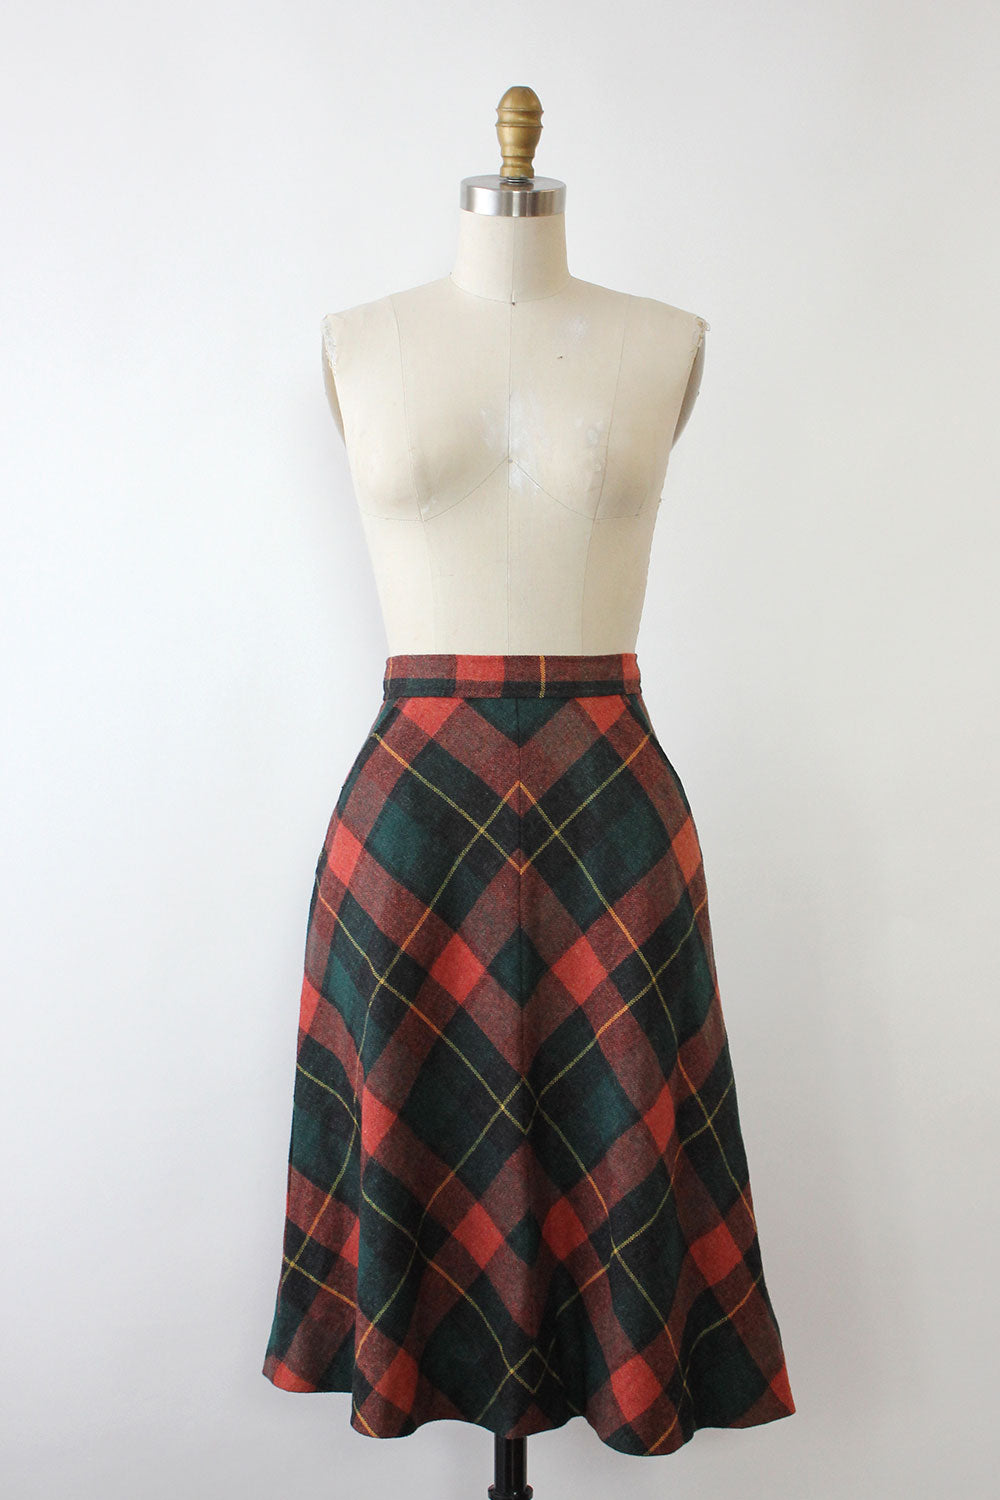 Miter Plaid Skirt XS